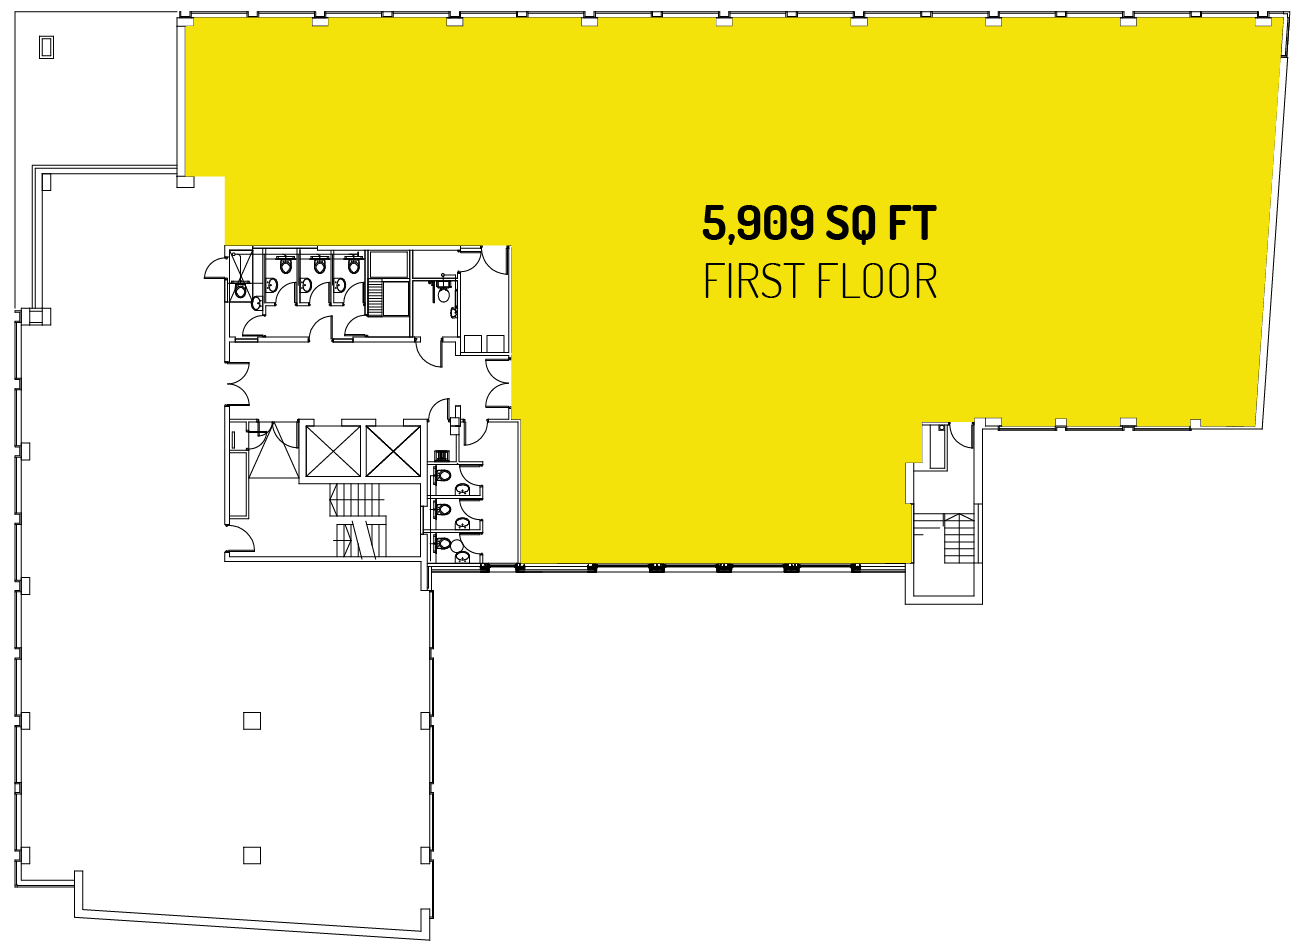 5,909 sq ft on the first floor